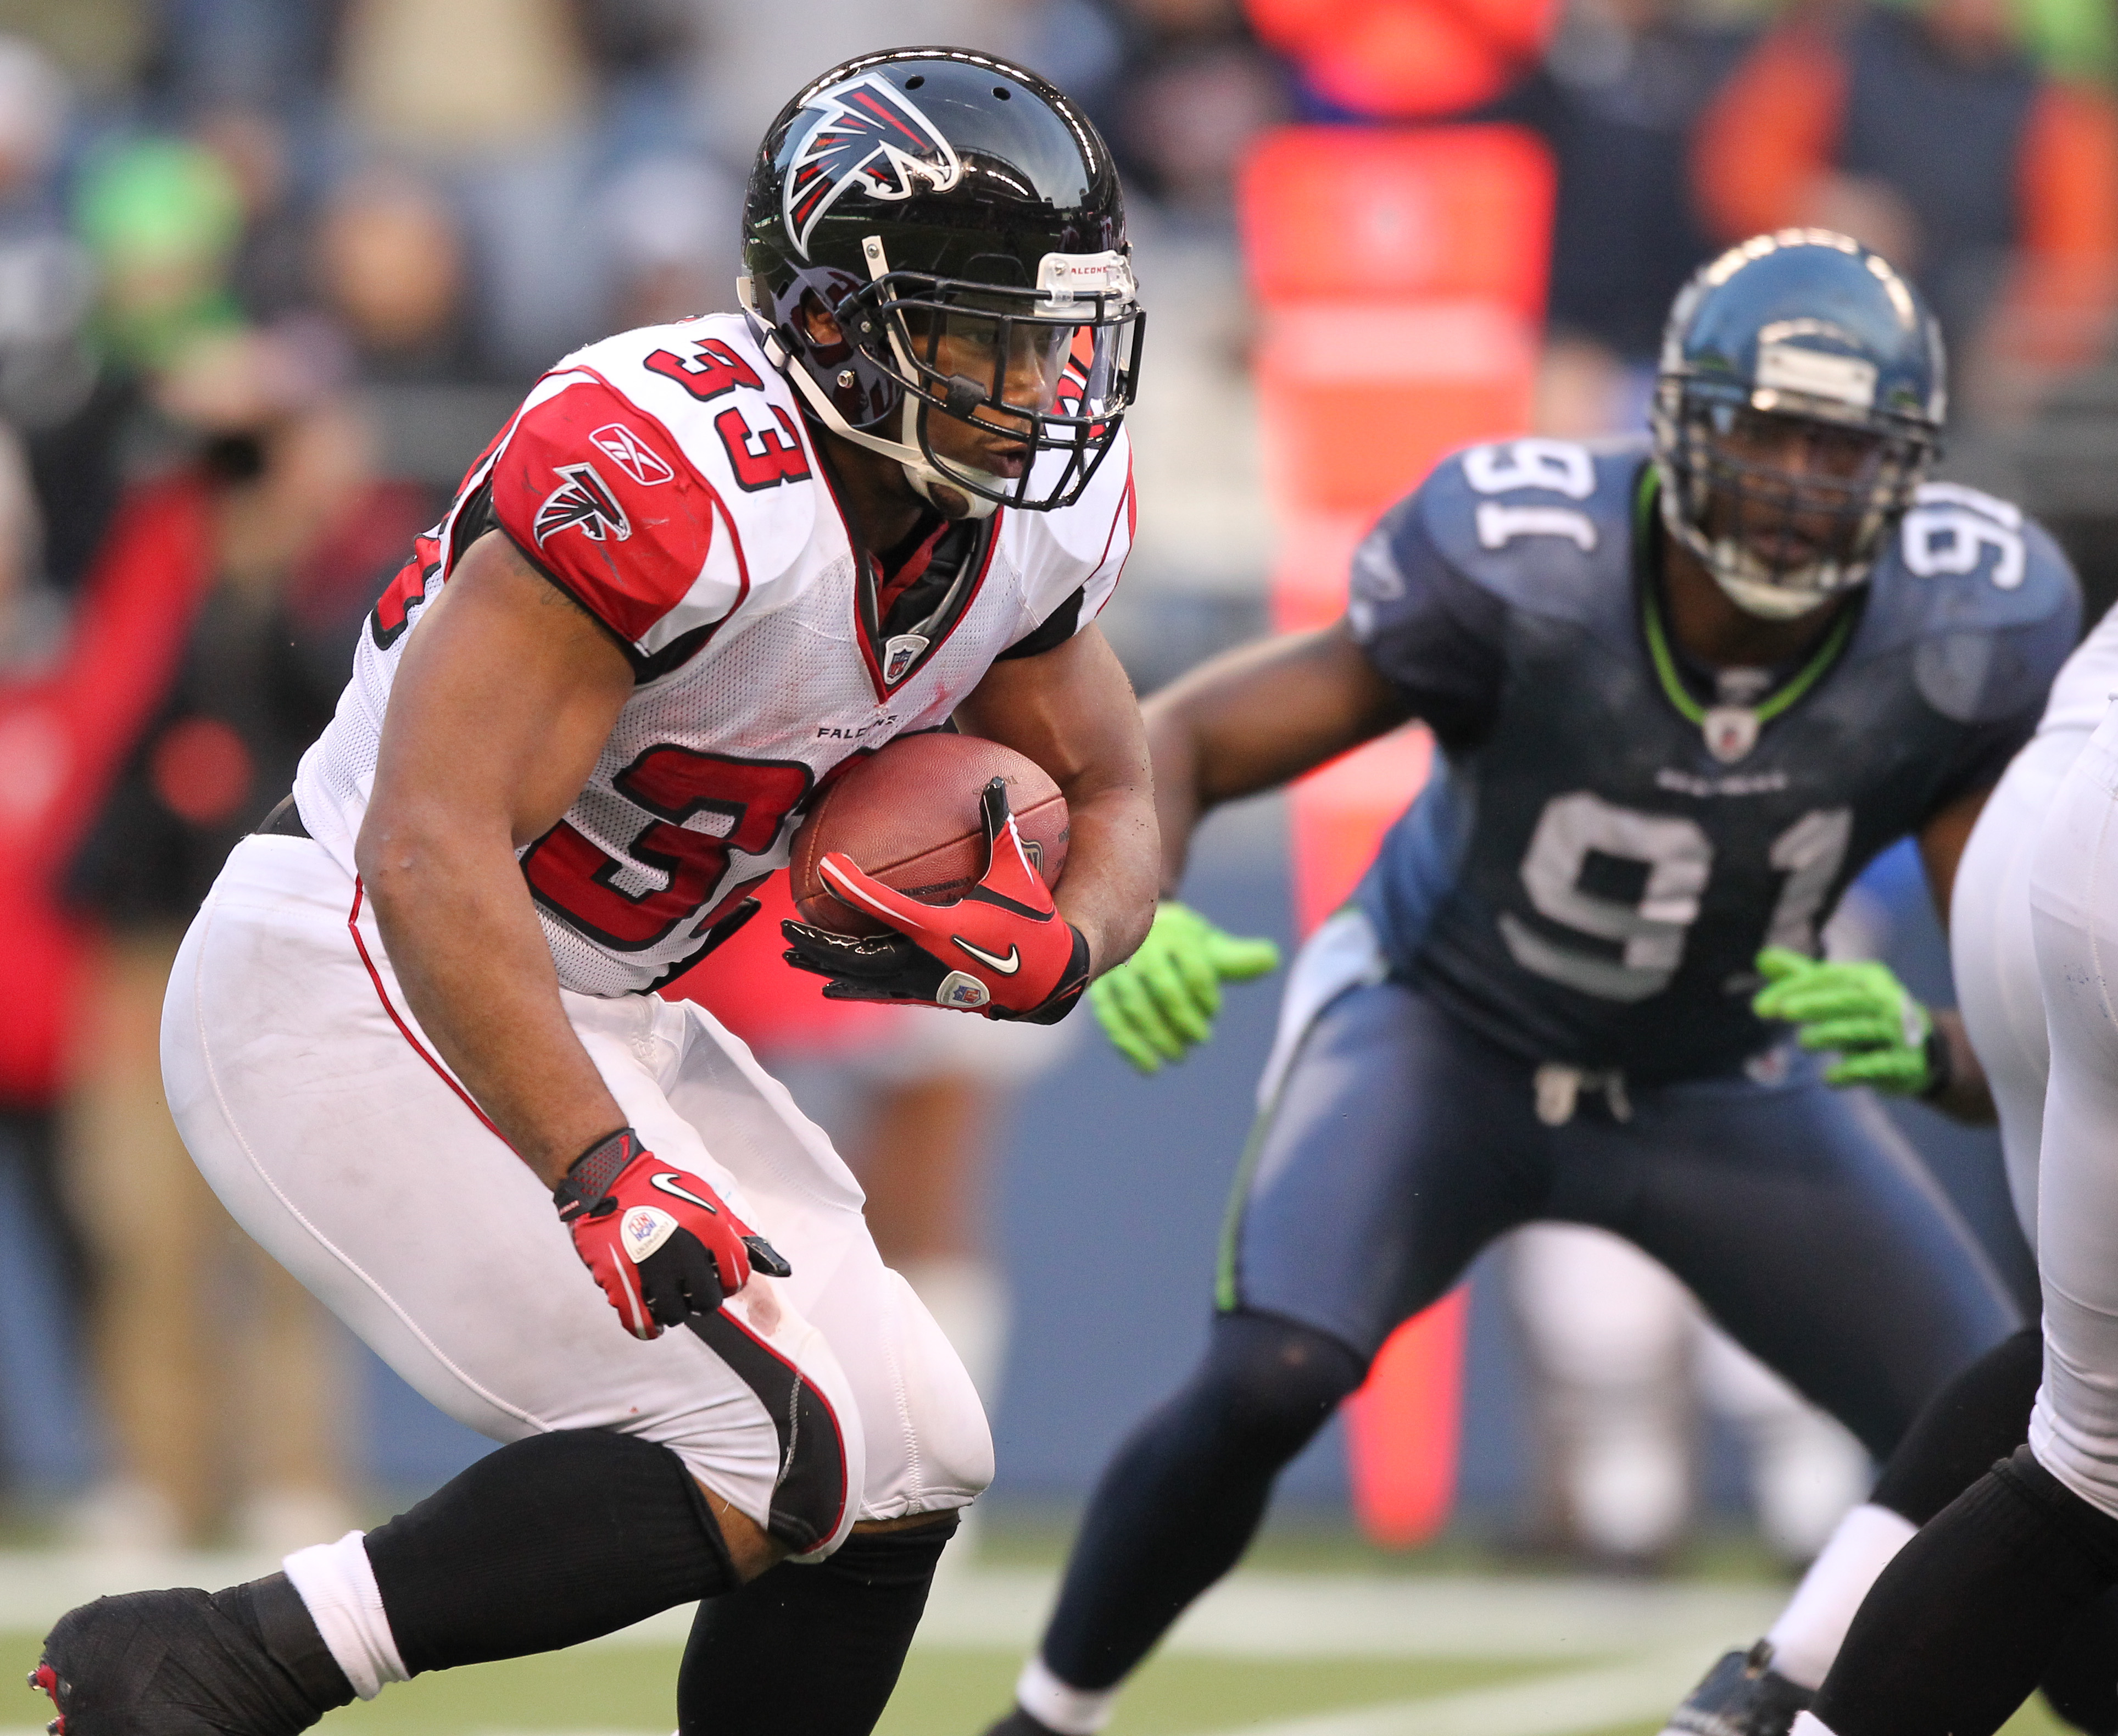 SEATTLE, WA - DECEMBER 19:  Running back Michael Turner #33 of the Atlanta Falcons rushes against the Seattle Seahawks at Qwest Field on December 19, 2010 in Seattle, Washington. (Photo by Otto Greule Jr/Getty Images)